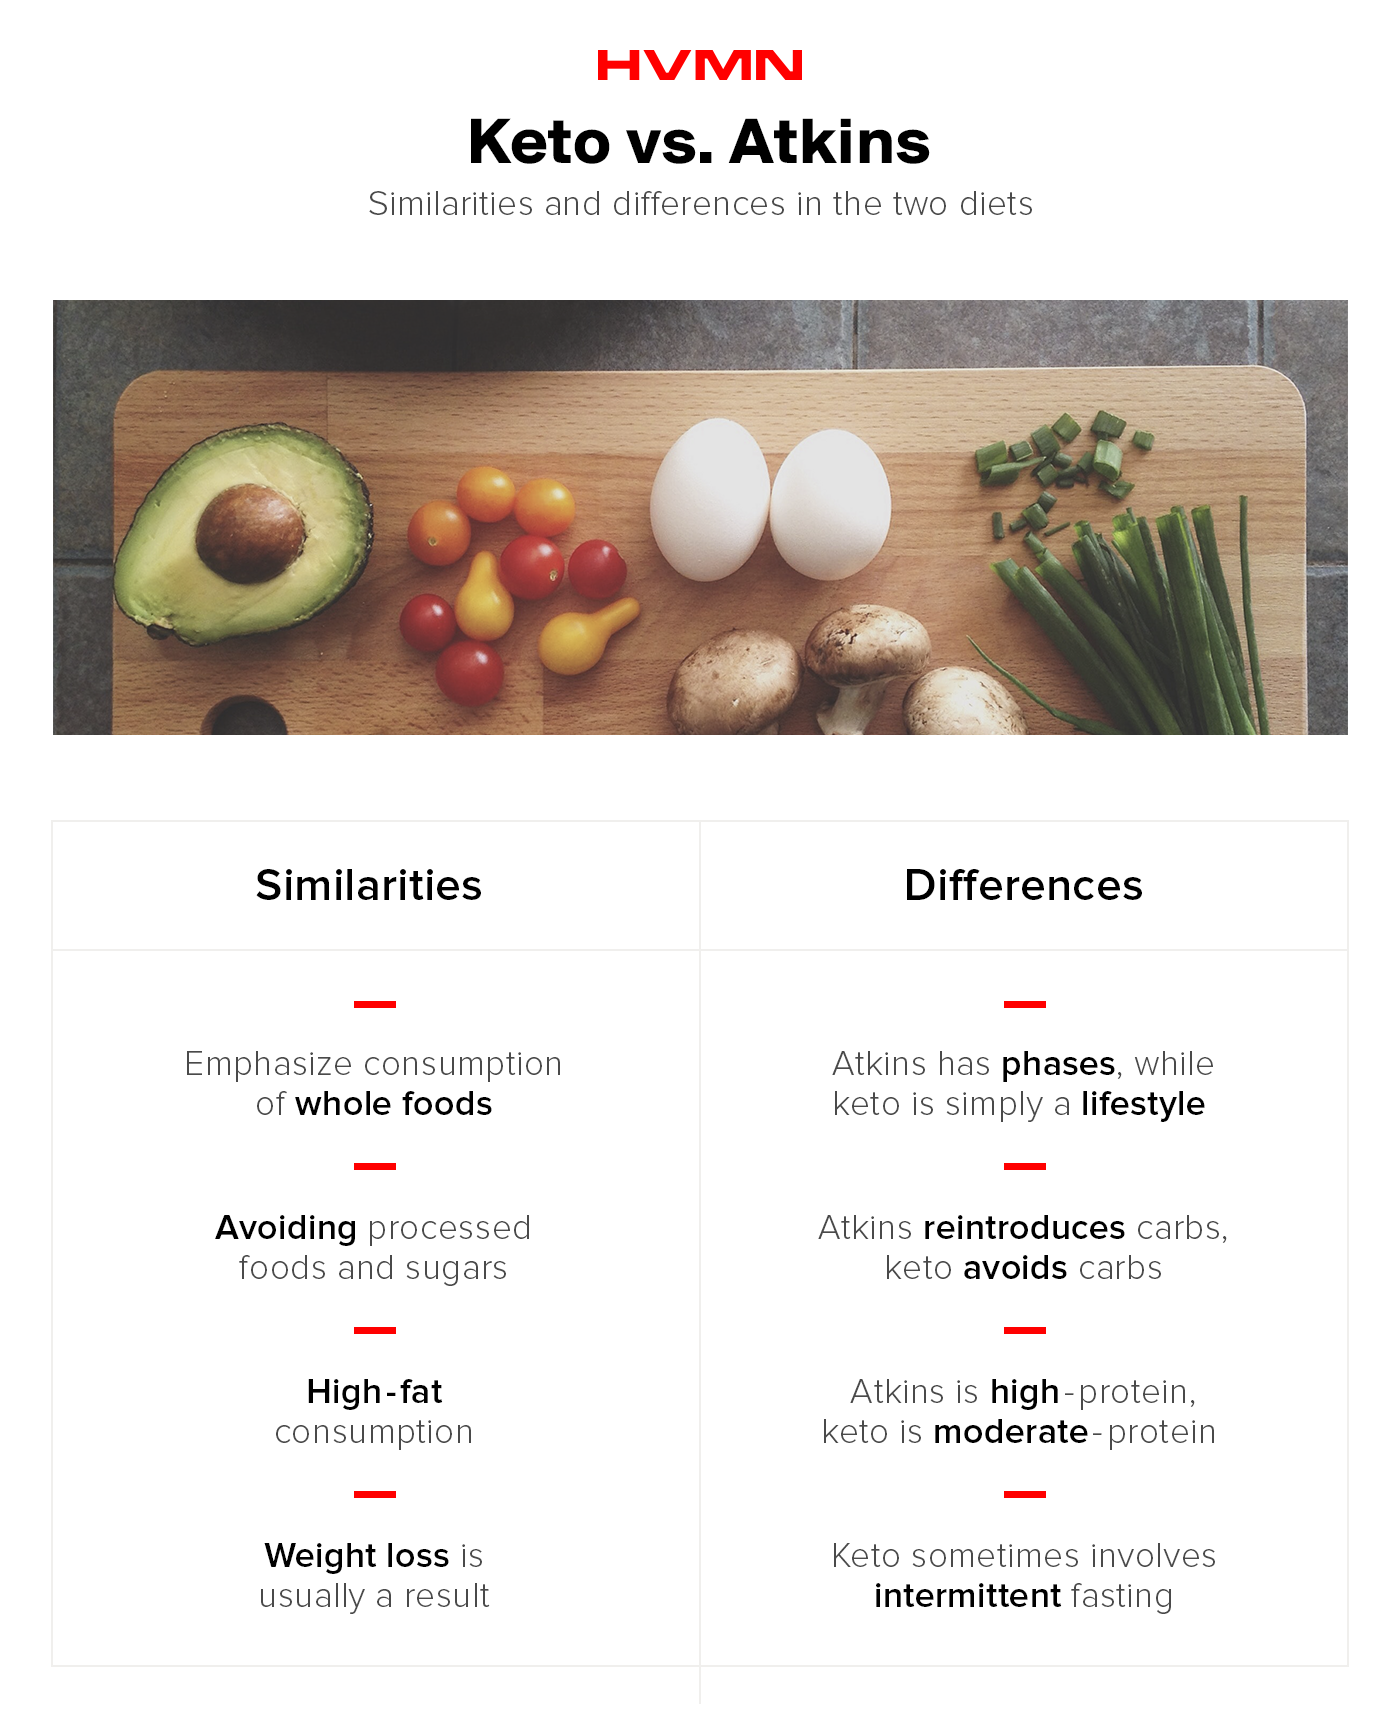 A cutting board with eggs, scallions, tomatoes, avocado and mushroom, showing the differences and similarities between keto and Atkins